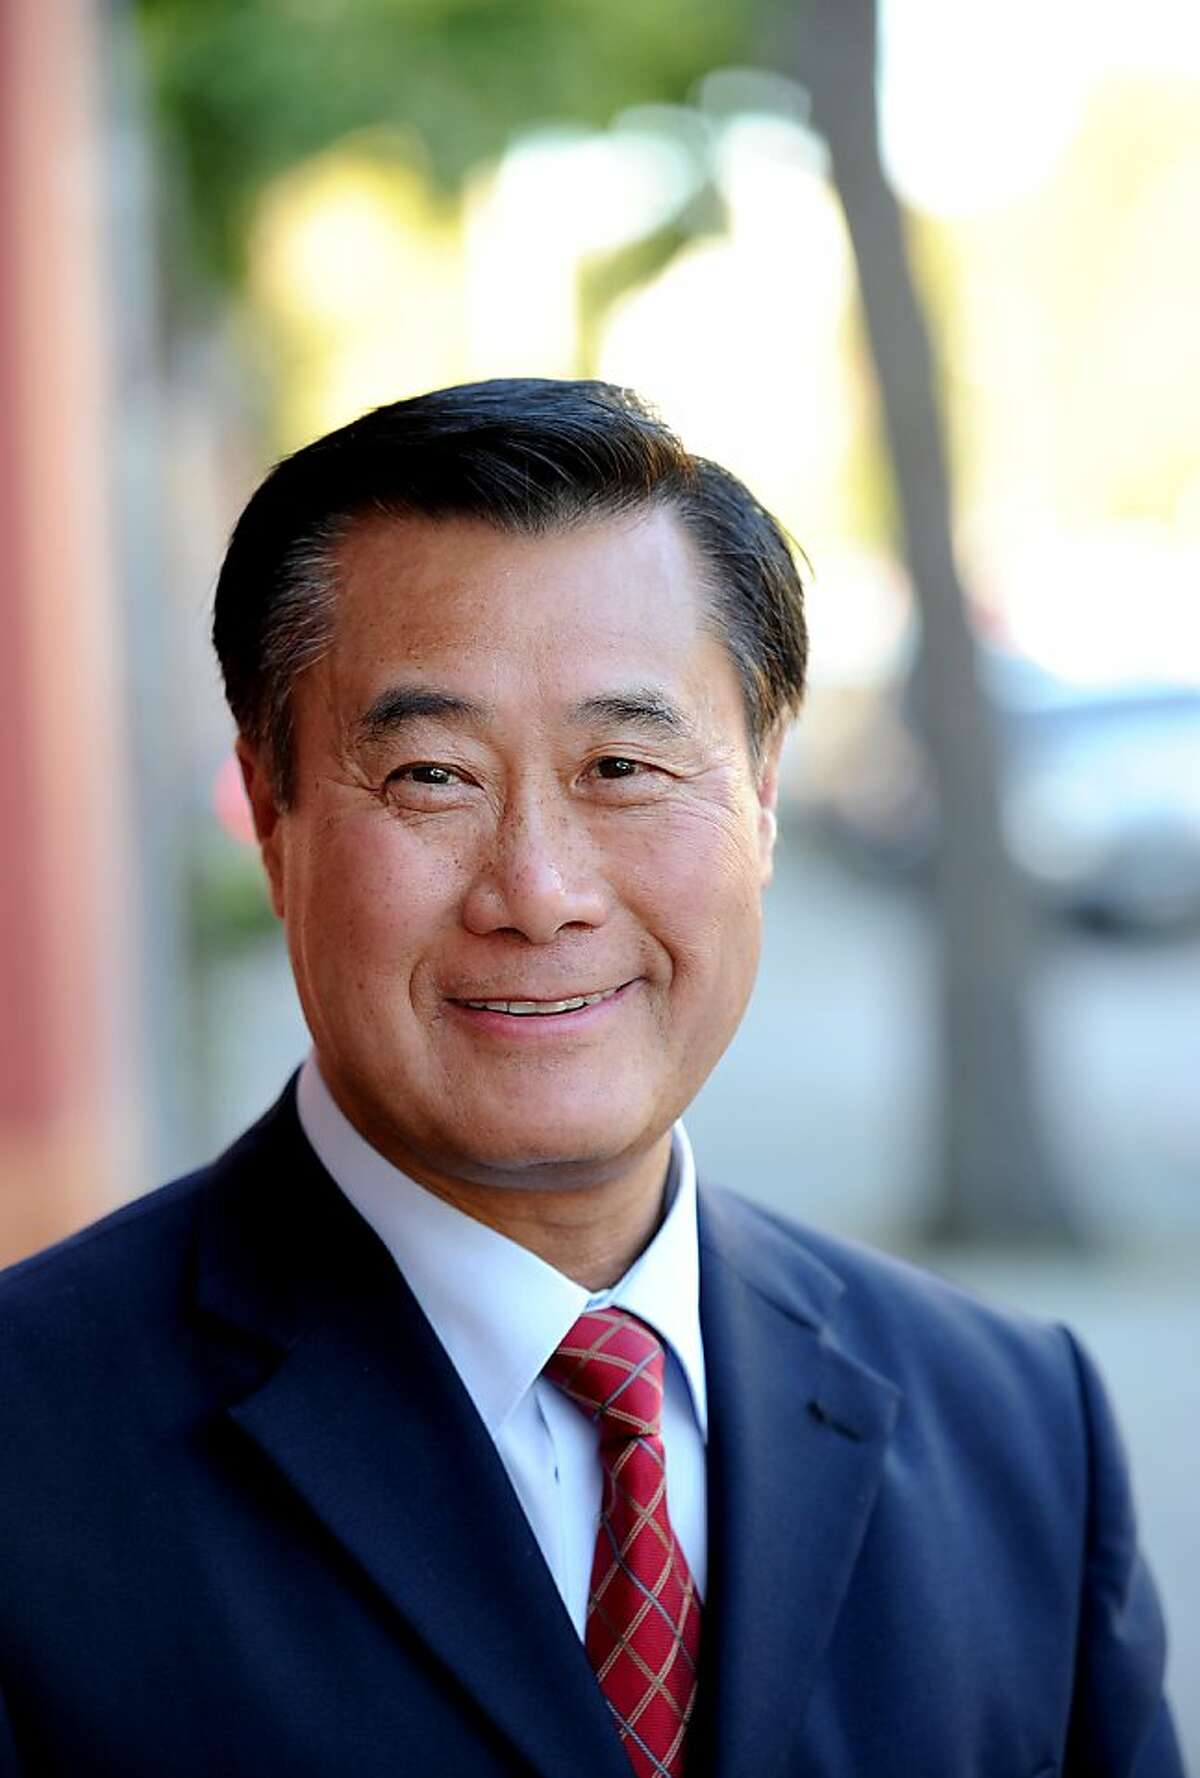 State Sen. Leland Yee, campaigning for mayor of San Francisco, poses for a portrait on Tuesday, July 19, 2011, in San Francisco.